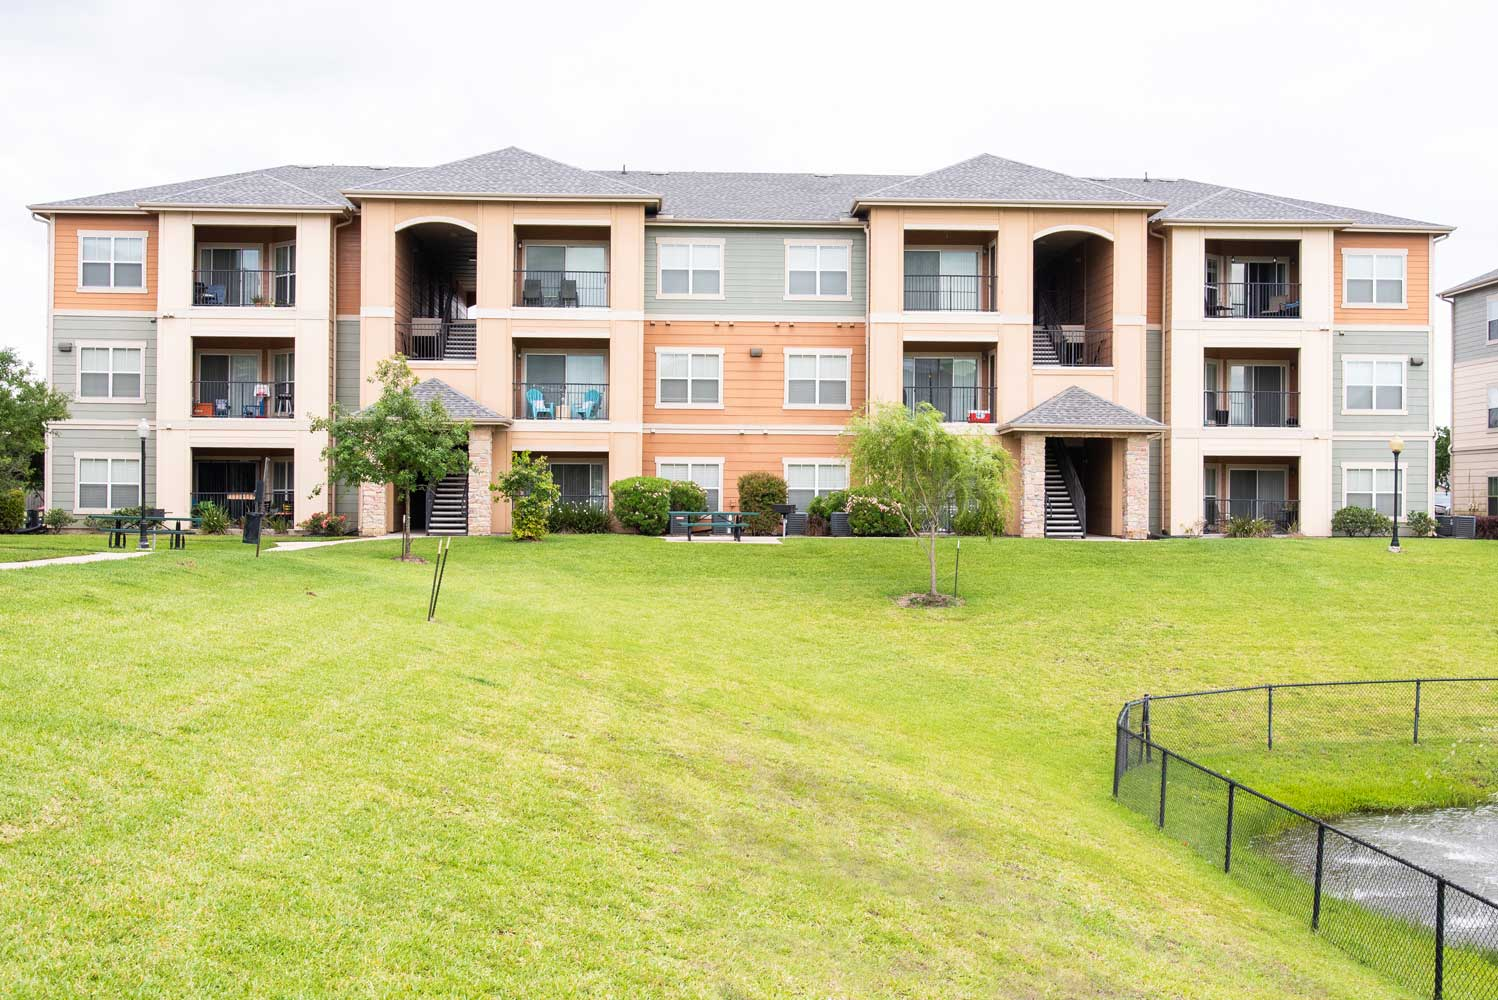 Apartments for Lease at the Oxford at Country Club Apartments in Baytown, TX